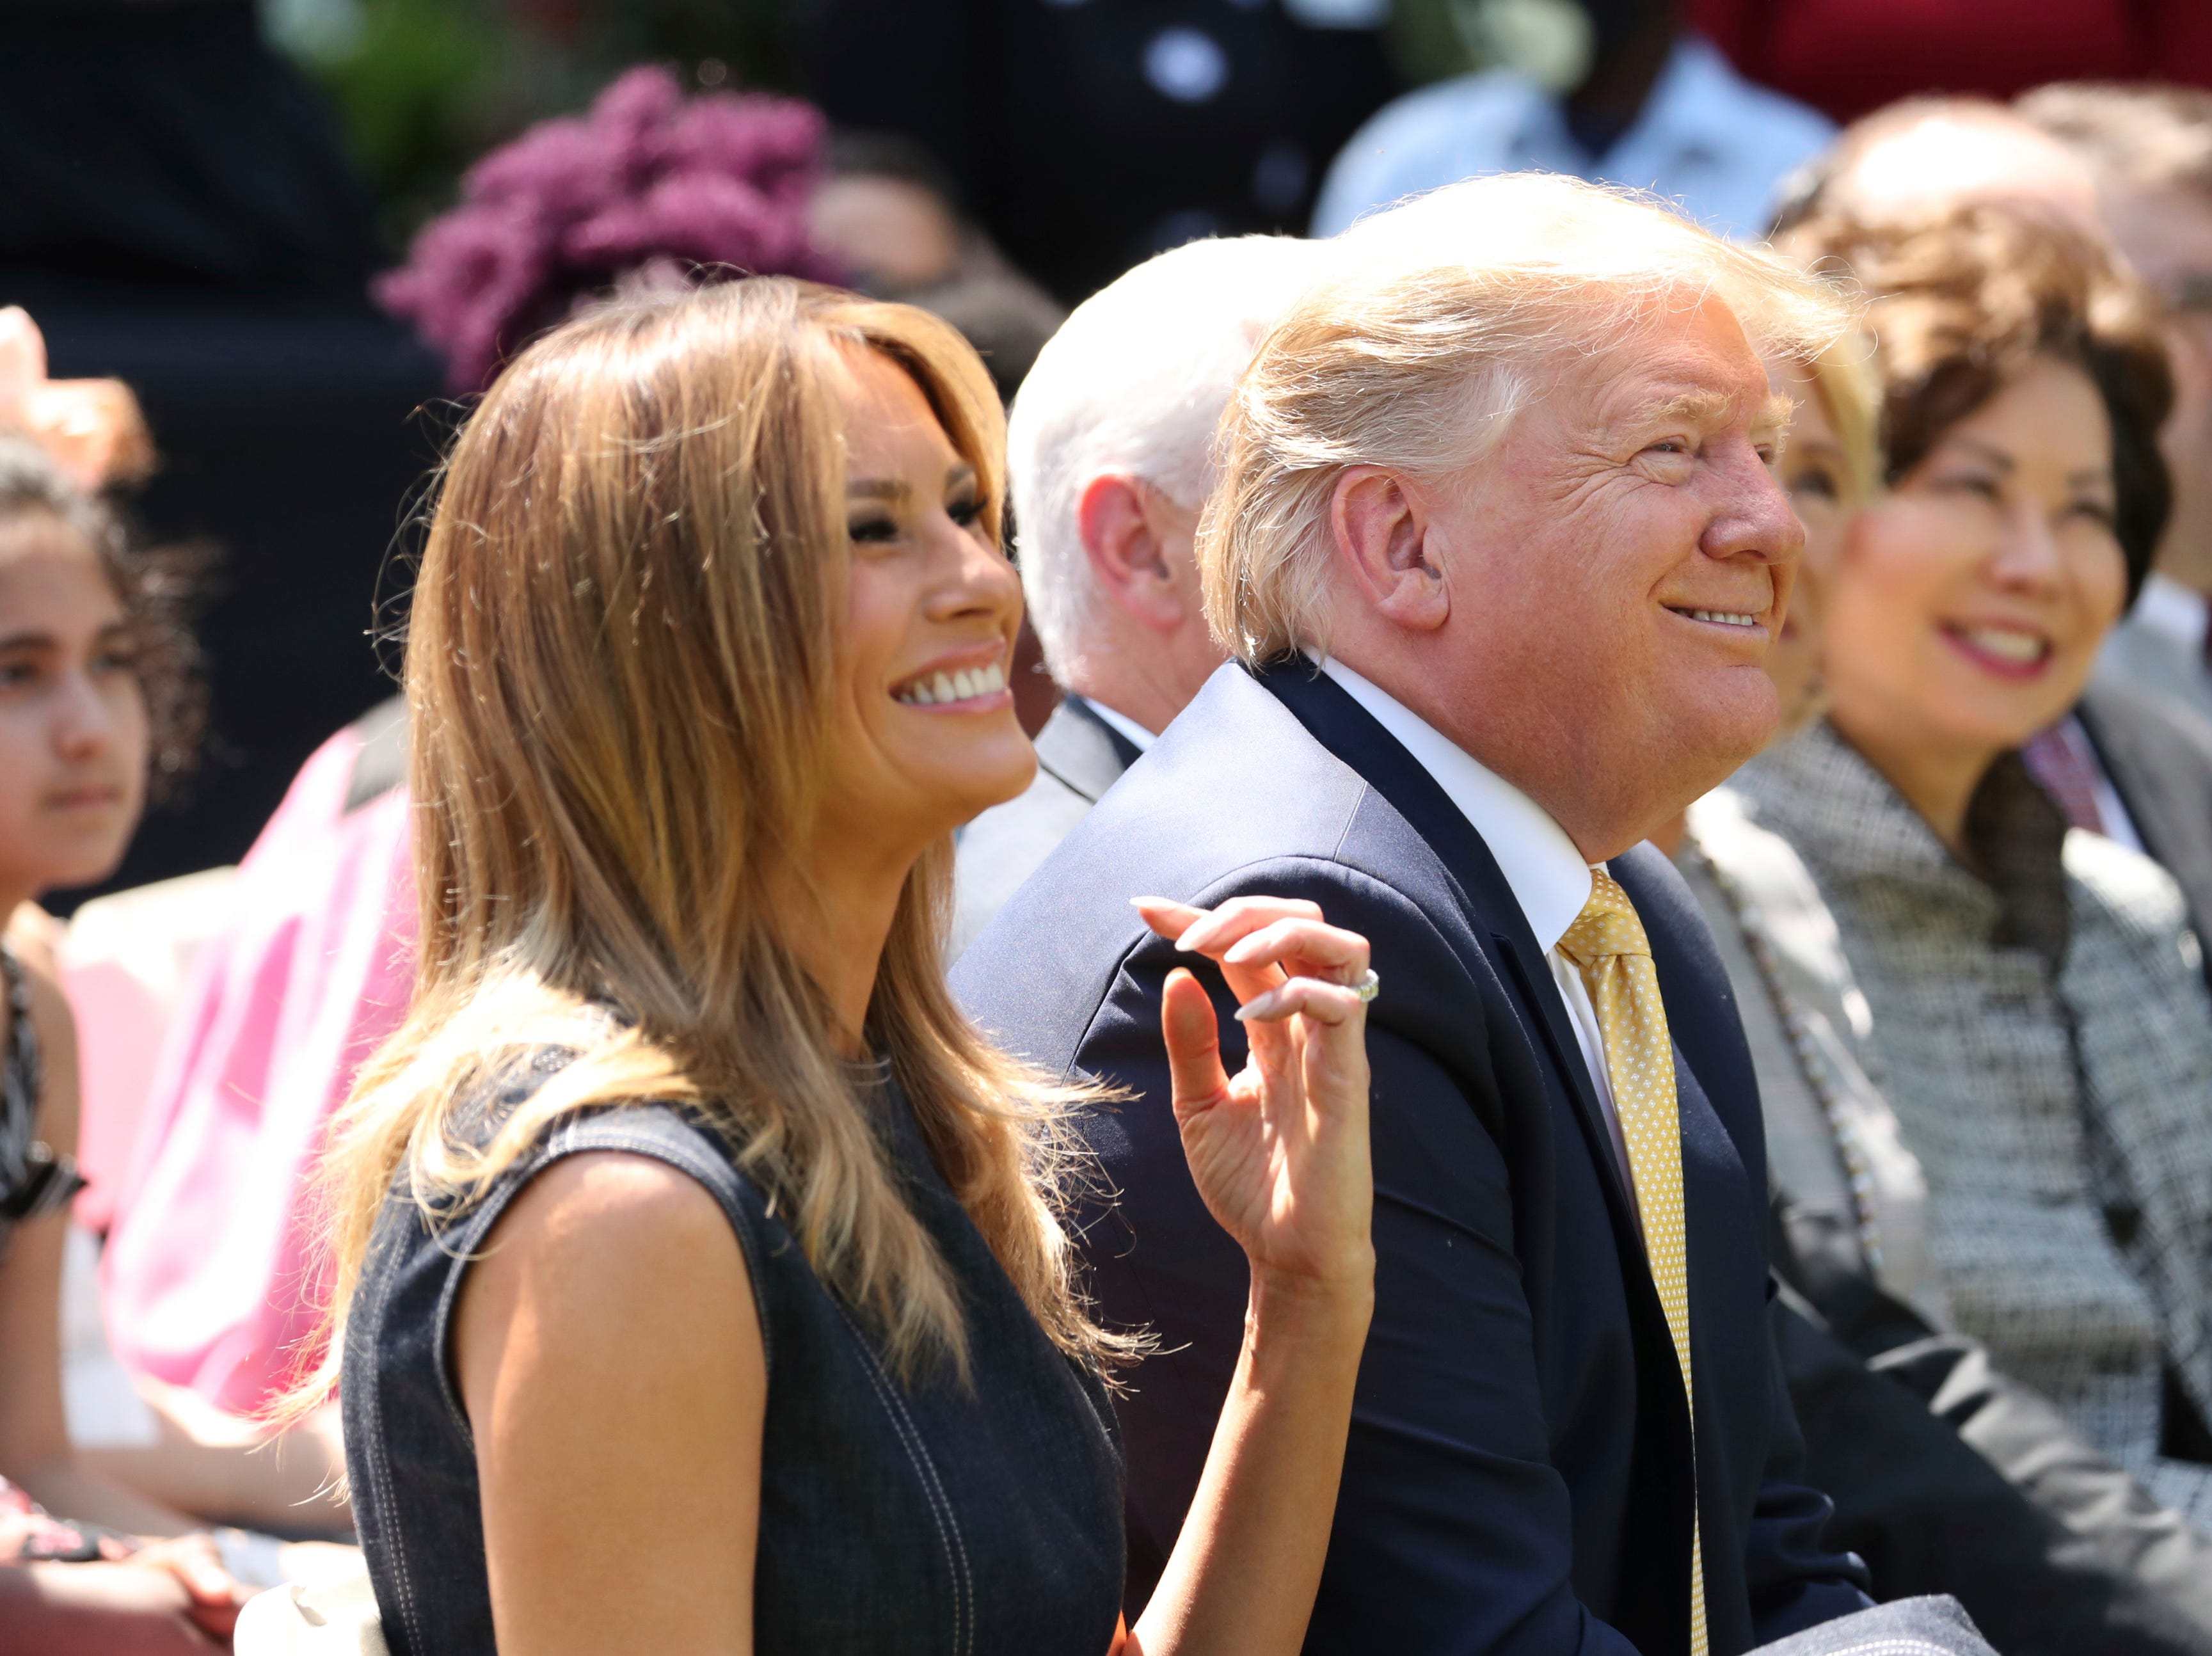 President Donald Trump and first lady Melania Trump attend a program for the first lady's Be Best initiative in the Rose Garden of the White House, Tuesday, May 7, 2019, in Washington.